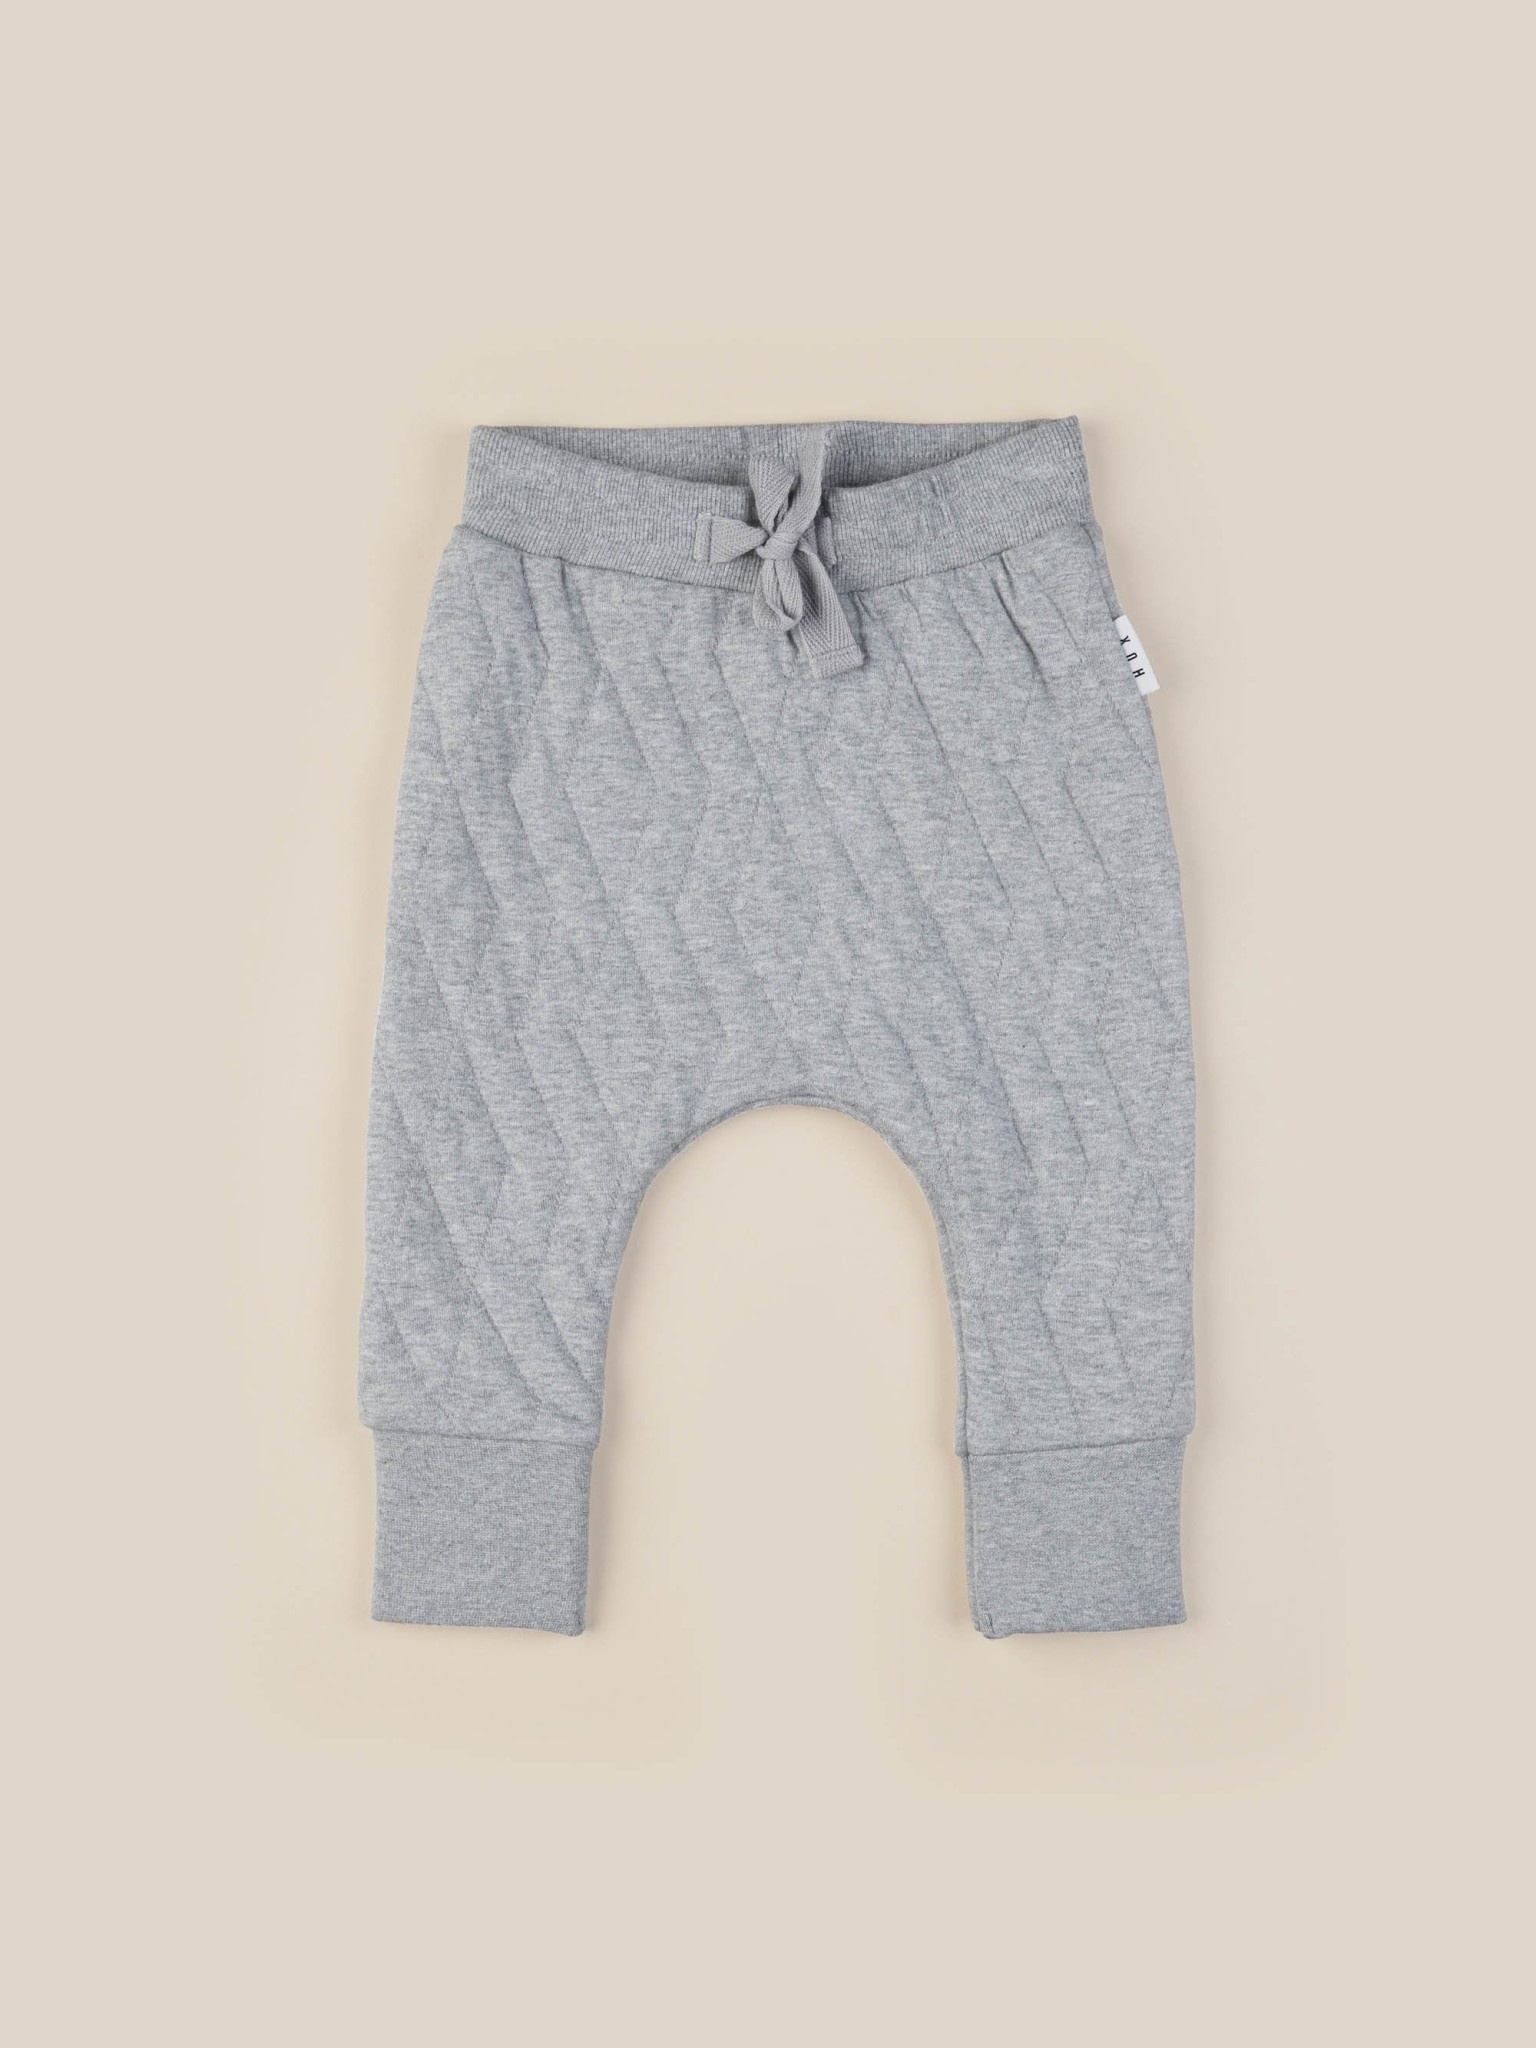 HUX BABY Stitch Drop Crotch Pant